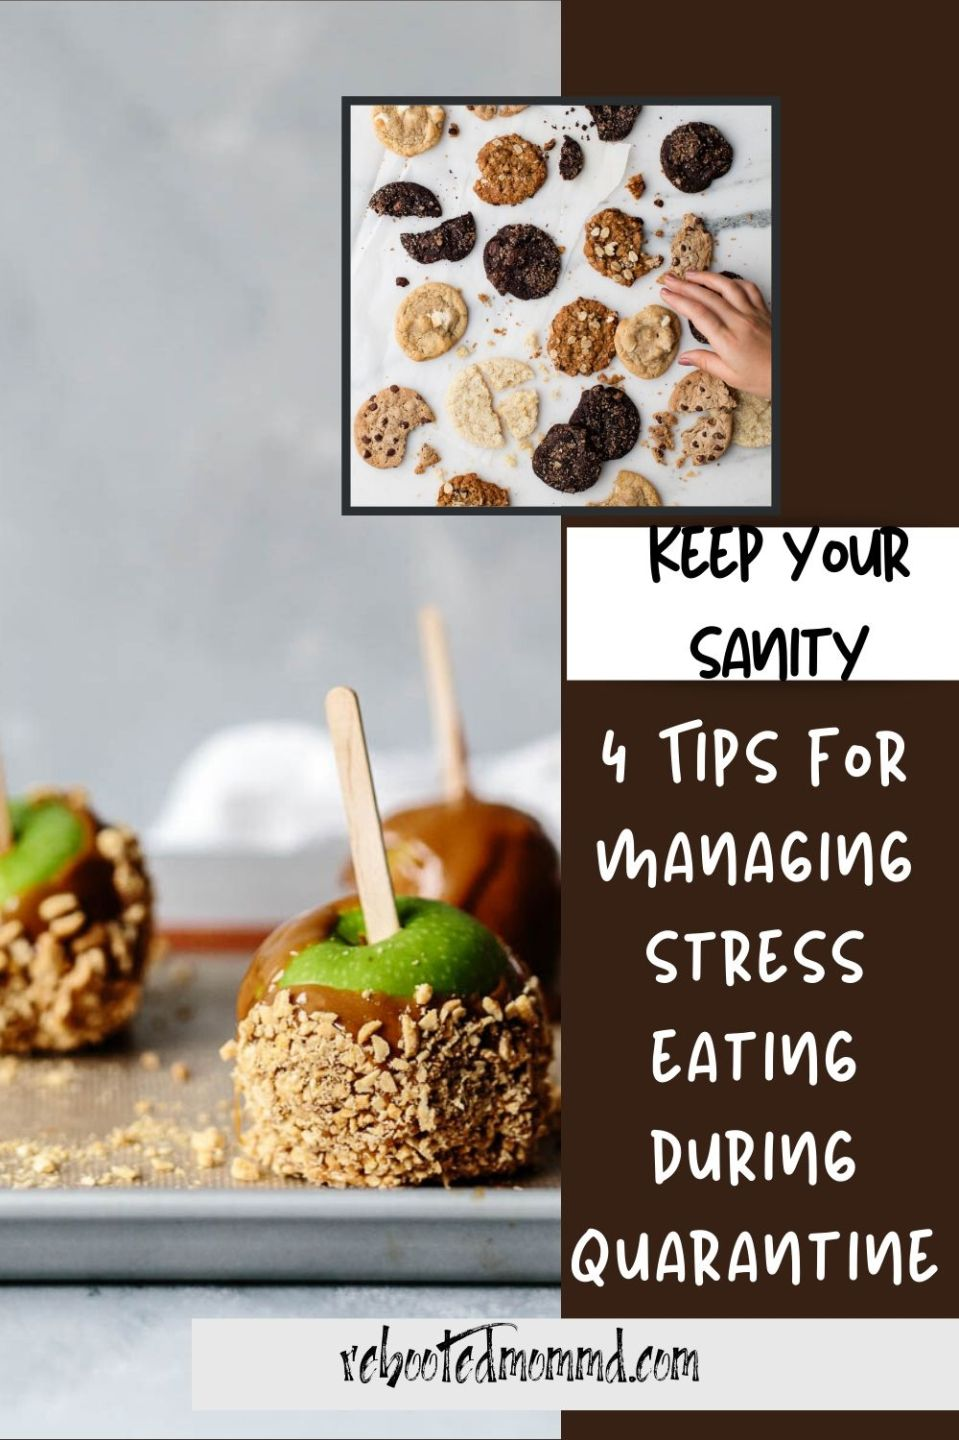 Stress Eating During Quarantine? 4 Tips to Help